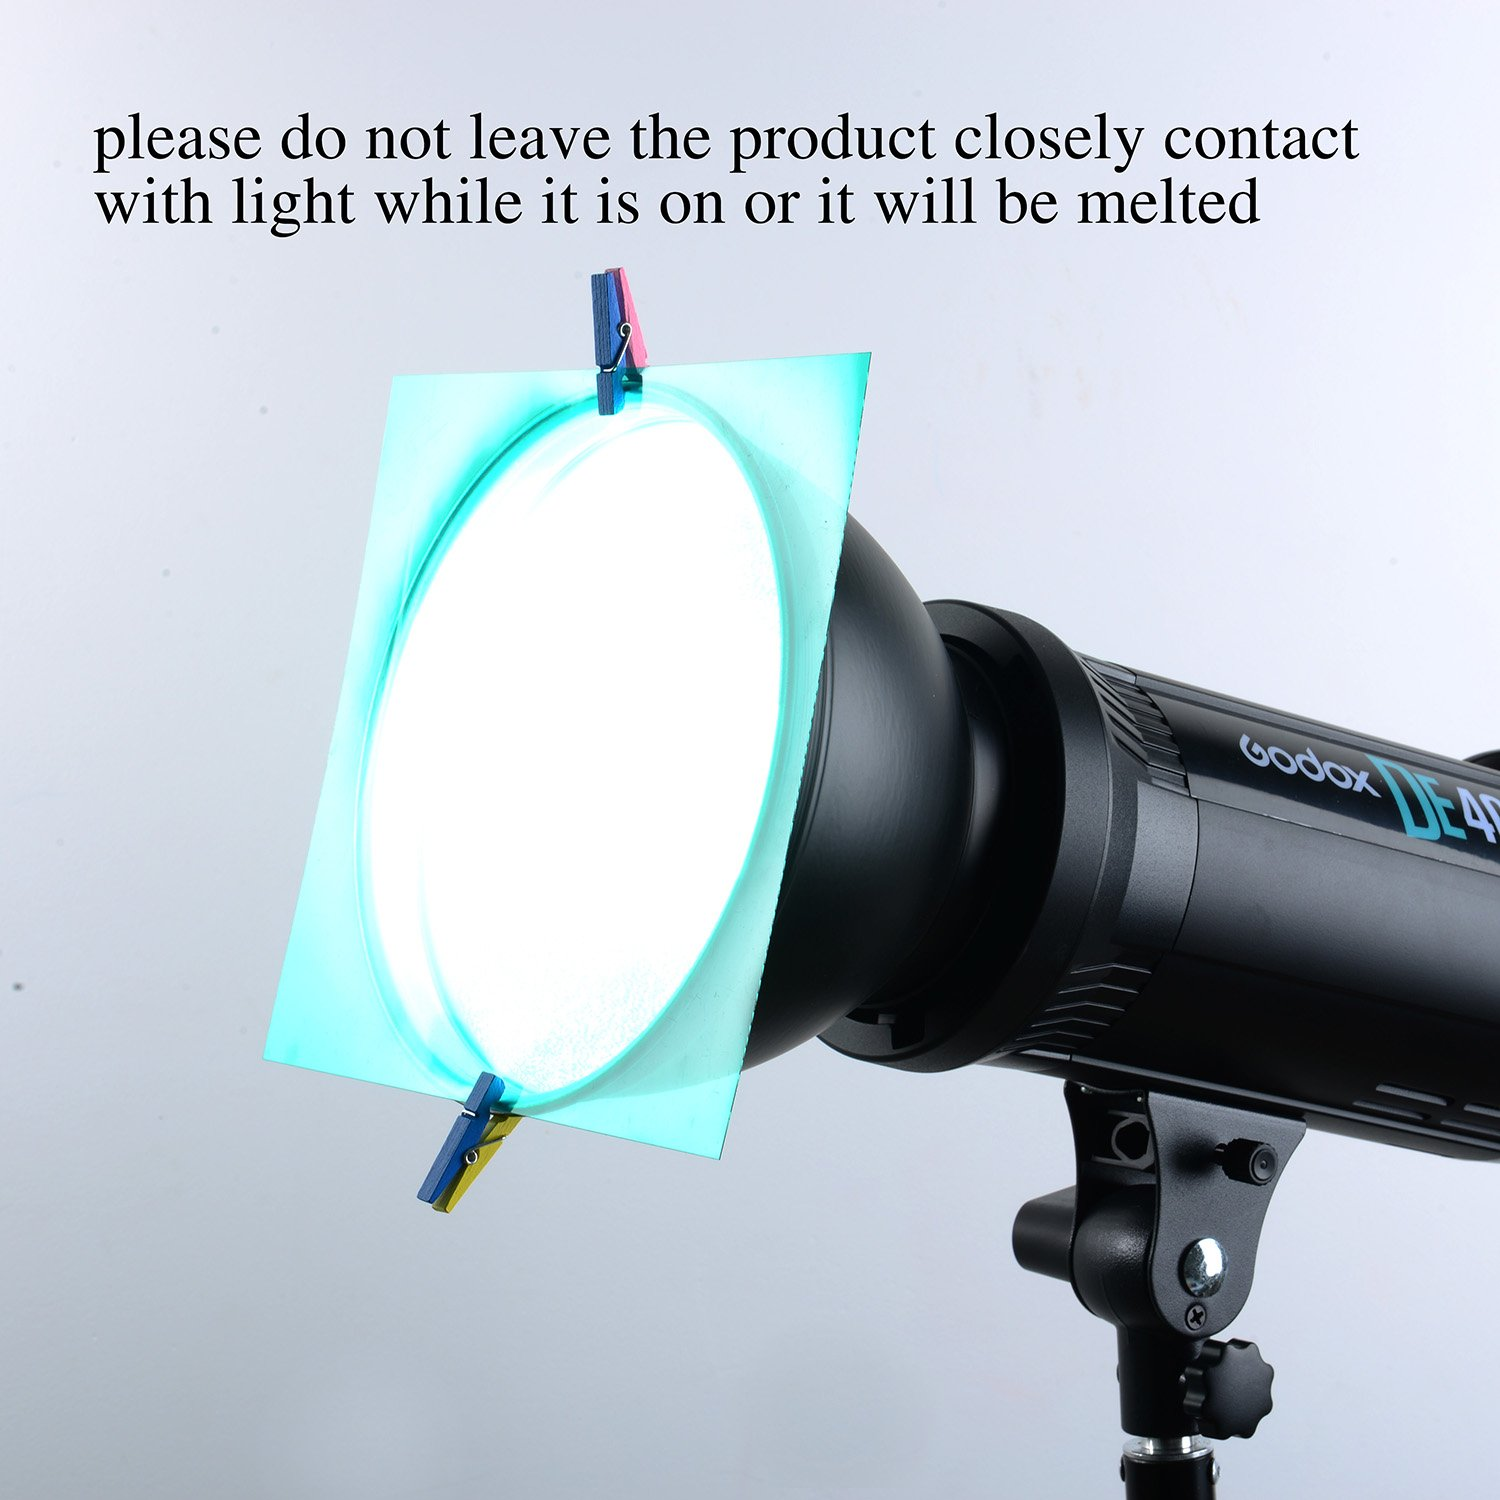 7 Sumind 14 Pieces Correction Gel Filter Overlays Transparency Color Film Plastic Sheets Gel Lighting Filters